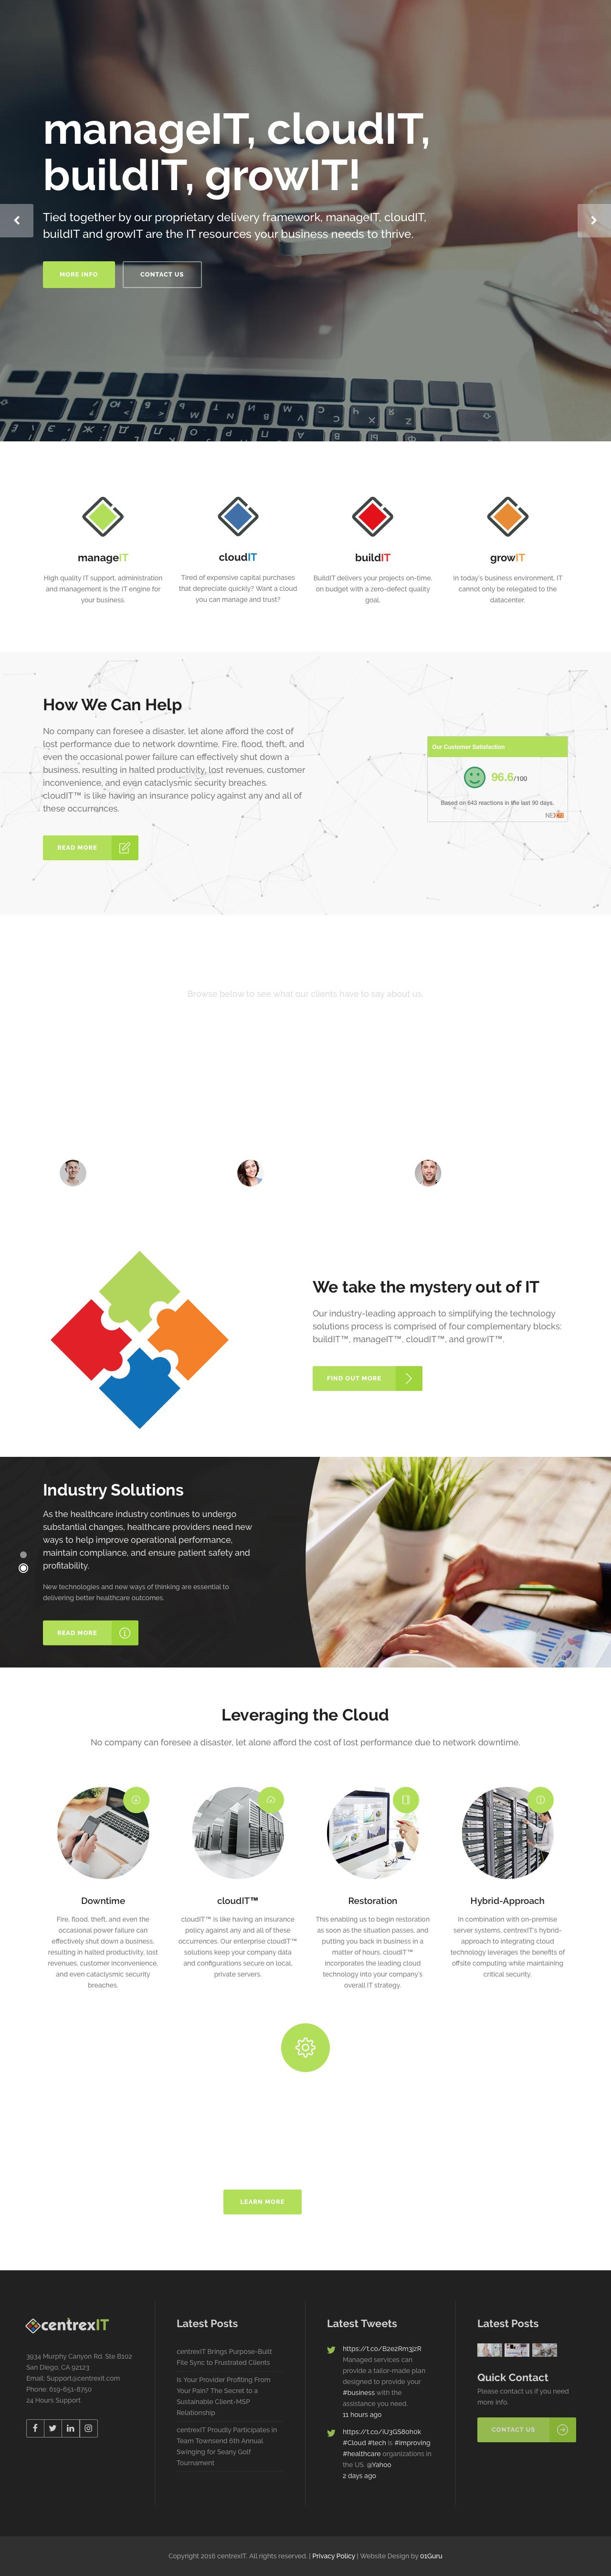 Screenshot of centrexit.com - Main Home - San Diego's Leader in IT Management and IT Consulting - centrexIT - captured Oct. 4, 2016